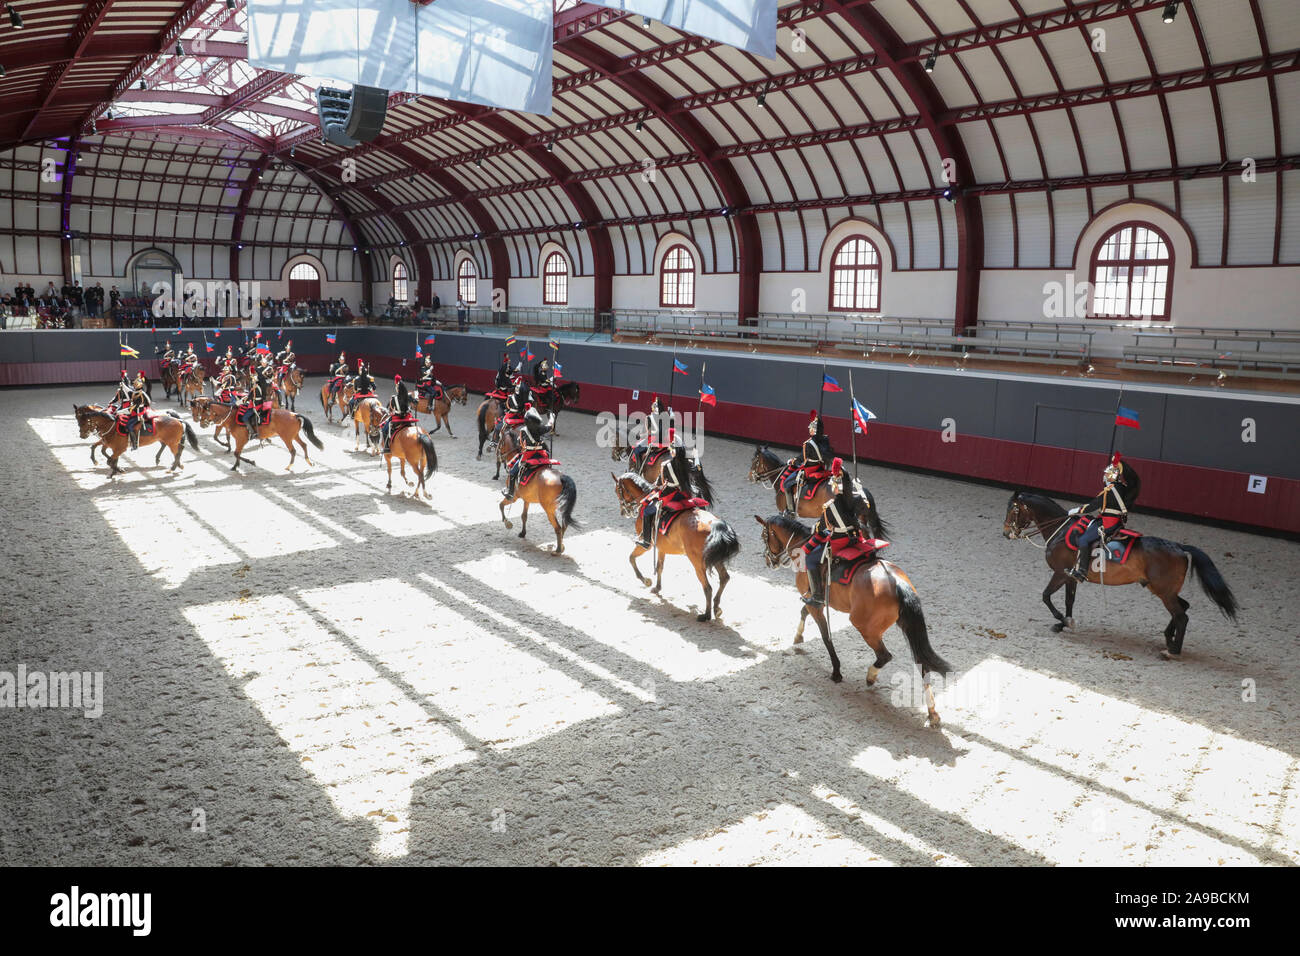 MANIFESTATION OF REGIMENT OF CAVALRY OF REPUBLICAN GUARD AT THE CELESTINS BARRACKS Stock Photo